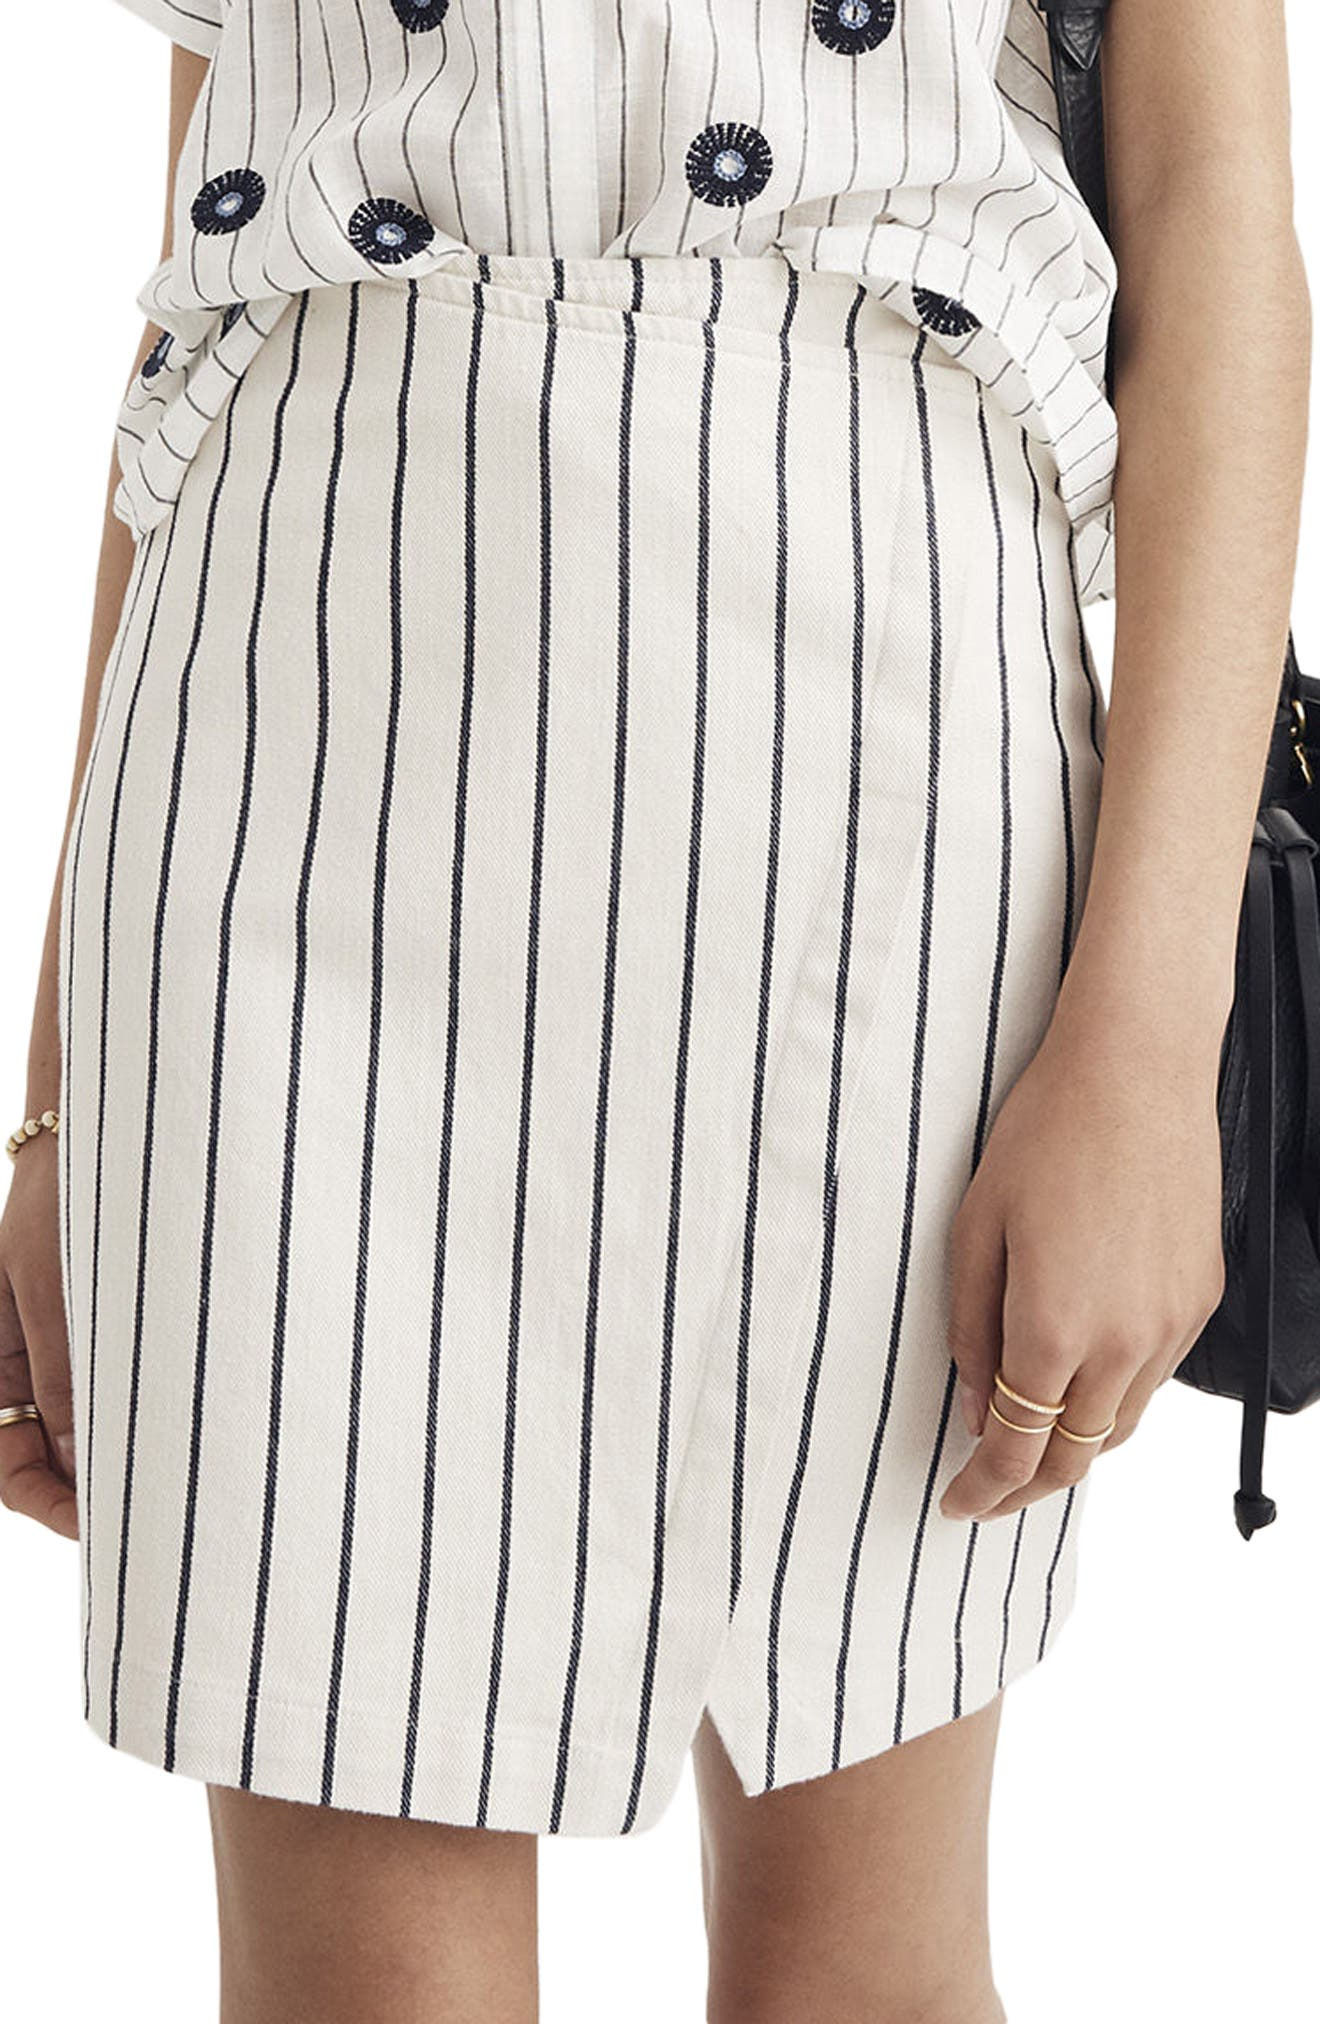 Main Image - Madewell Stripe Faux Wrap Skirt